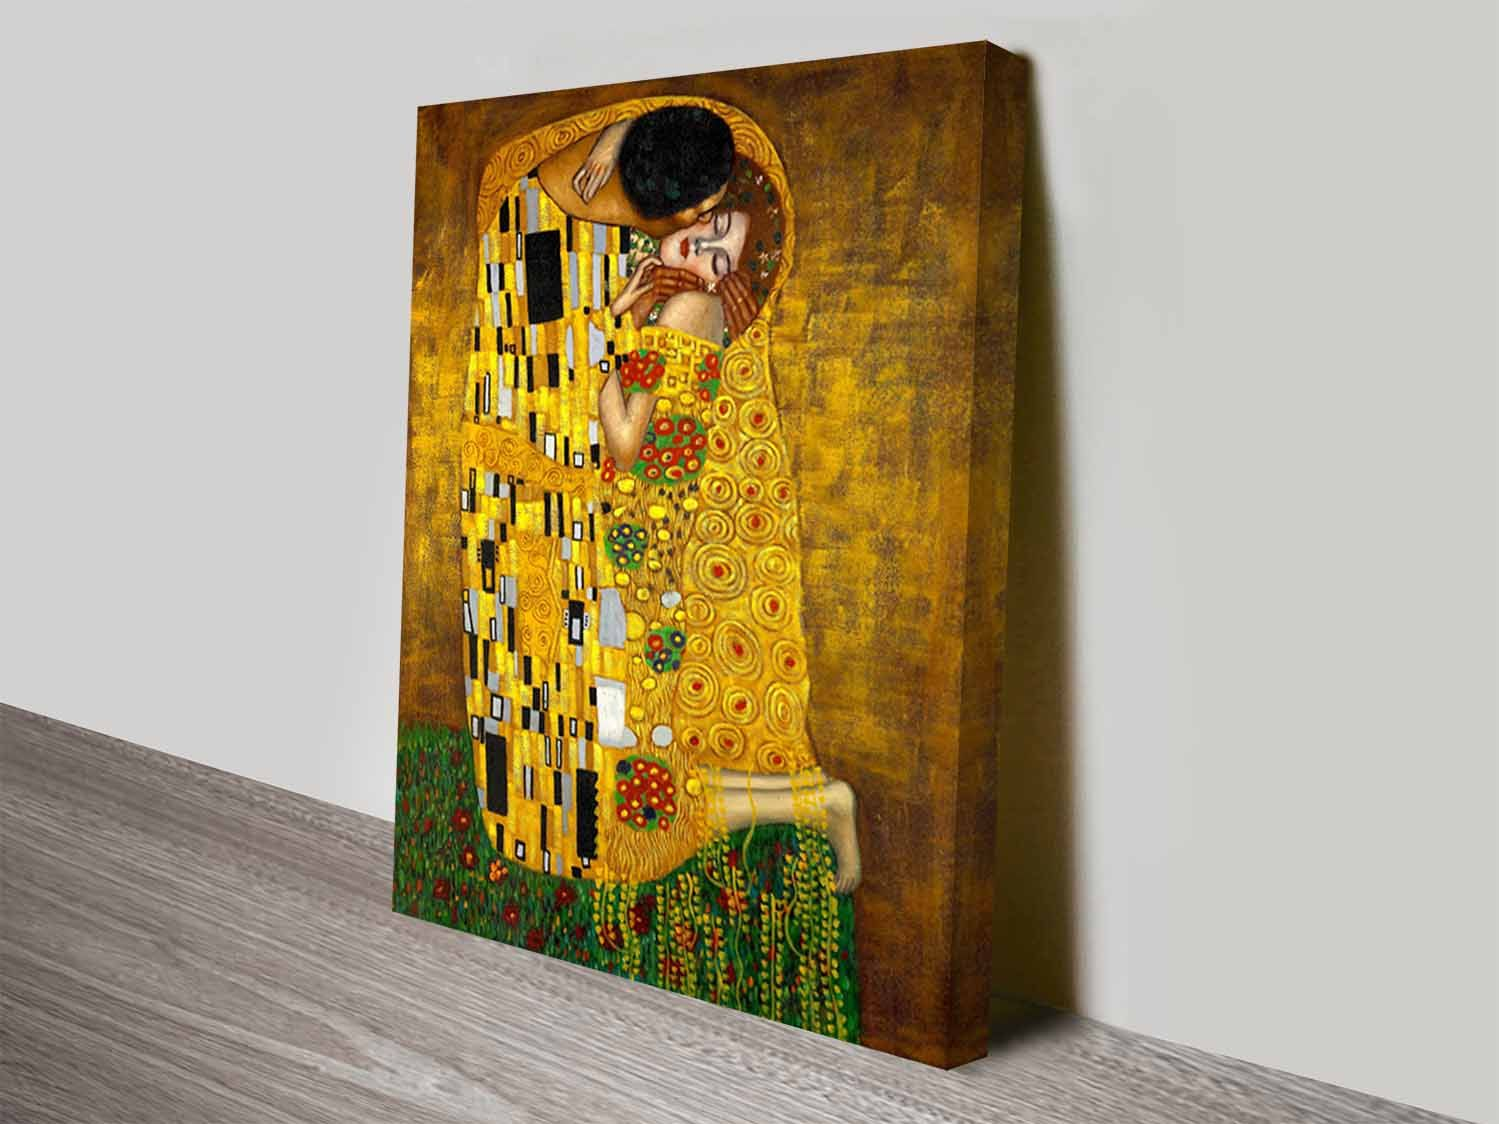 The Kiss by Gustav Klimt | Klimt, Classical art and Kiss